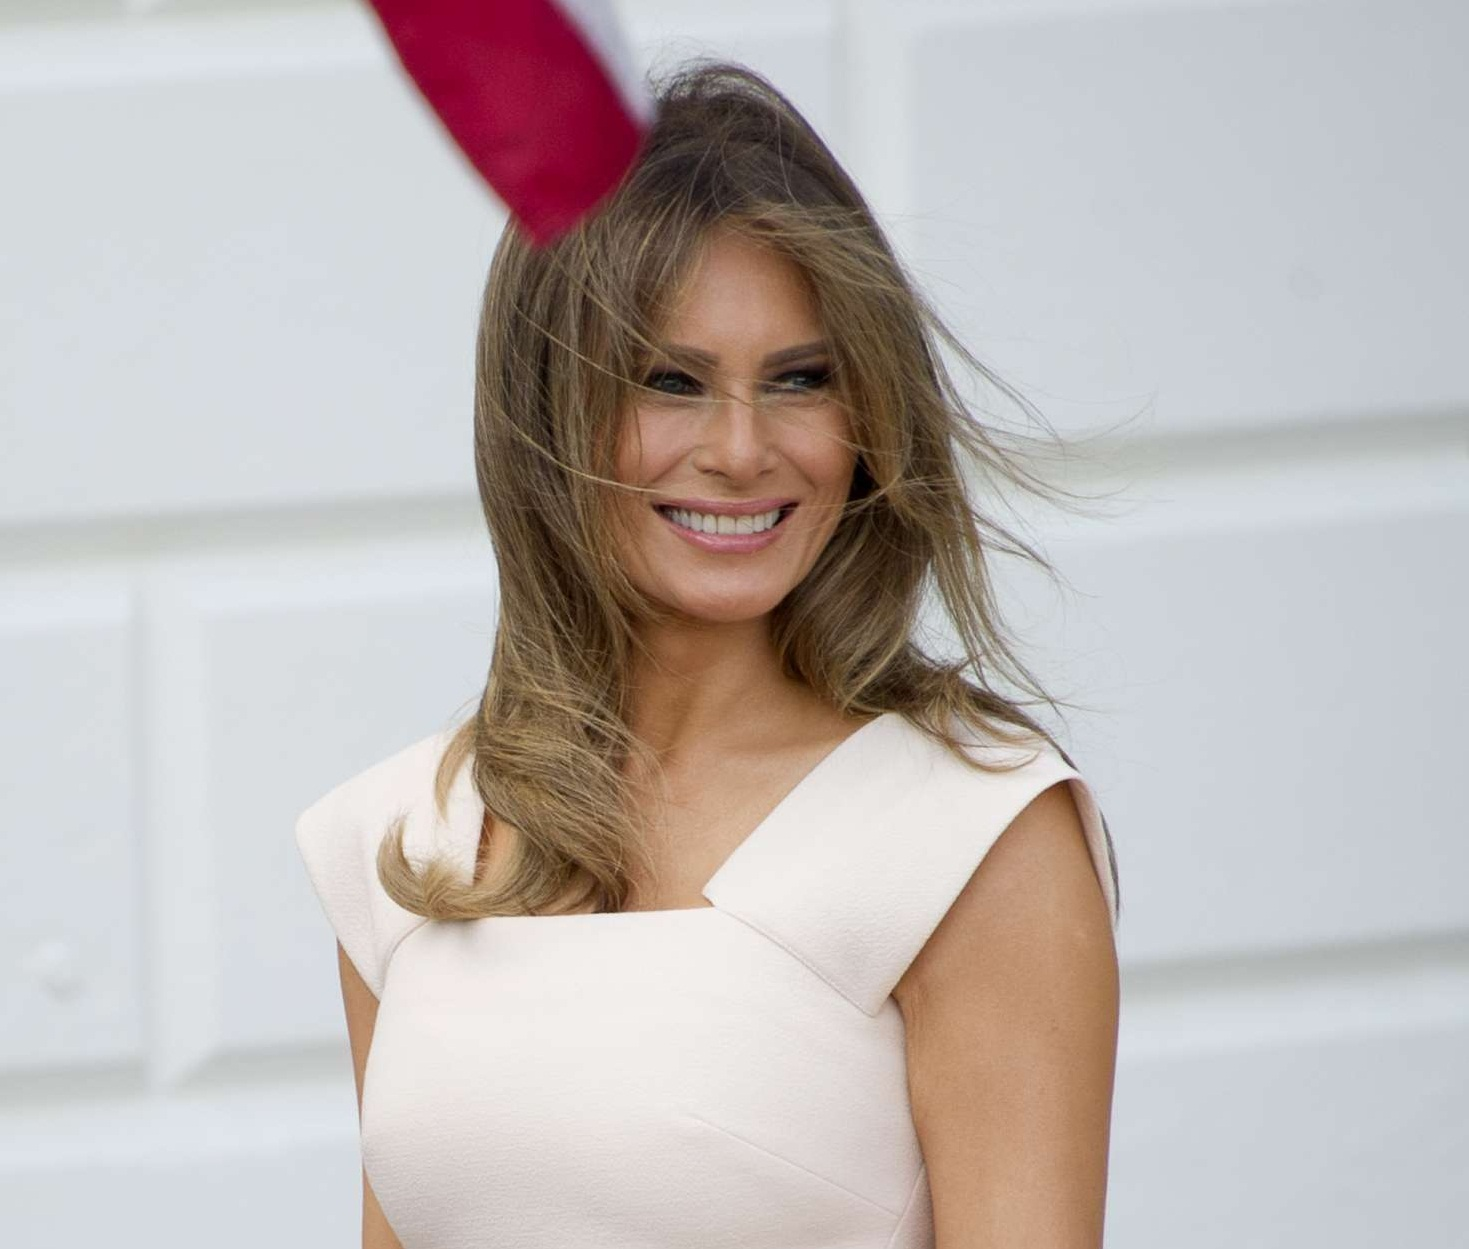 Melania Trump attends first official event after 24 days